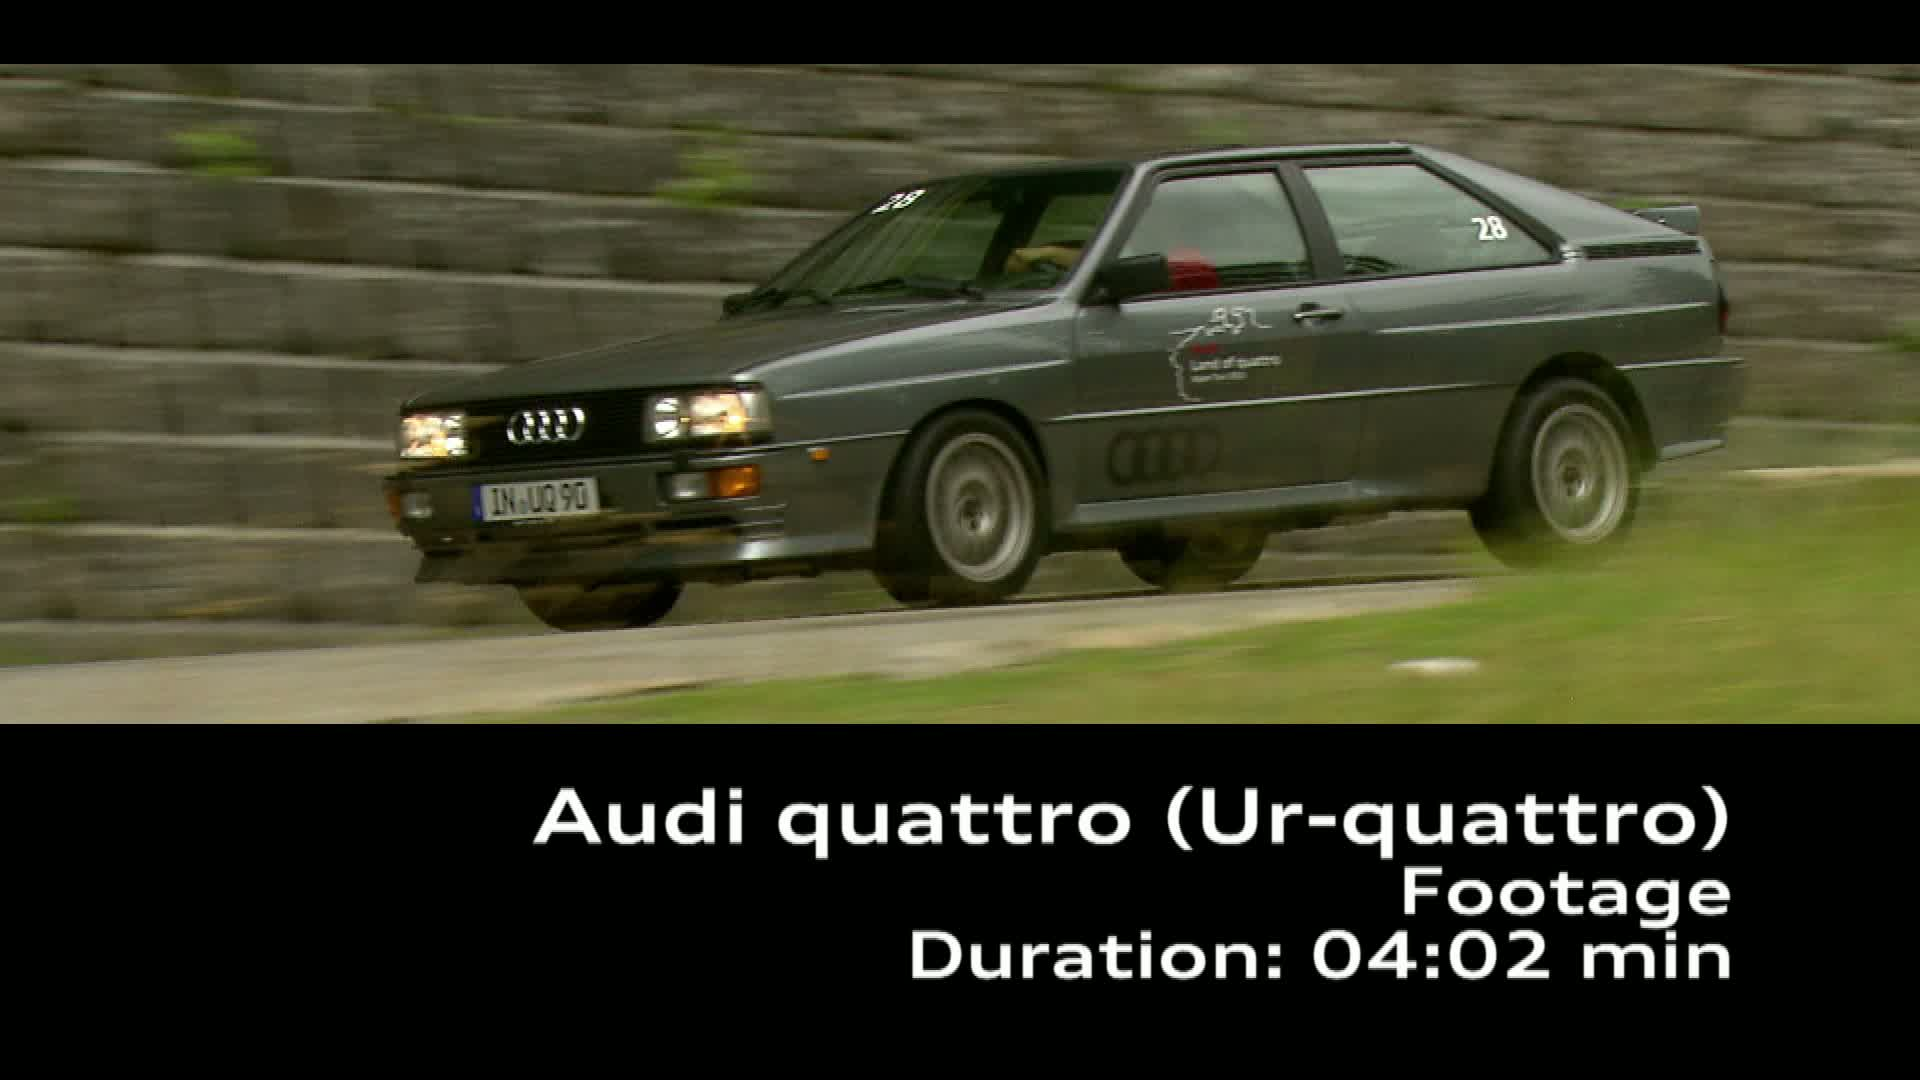 The Audi quattro (Ur-quattro) - Footage